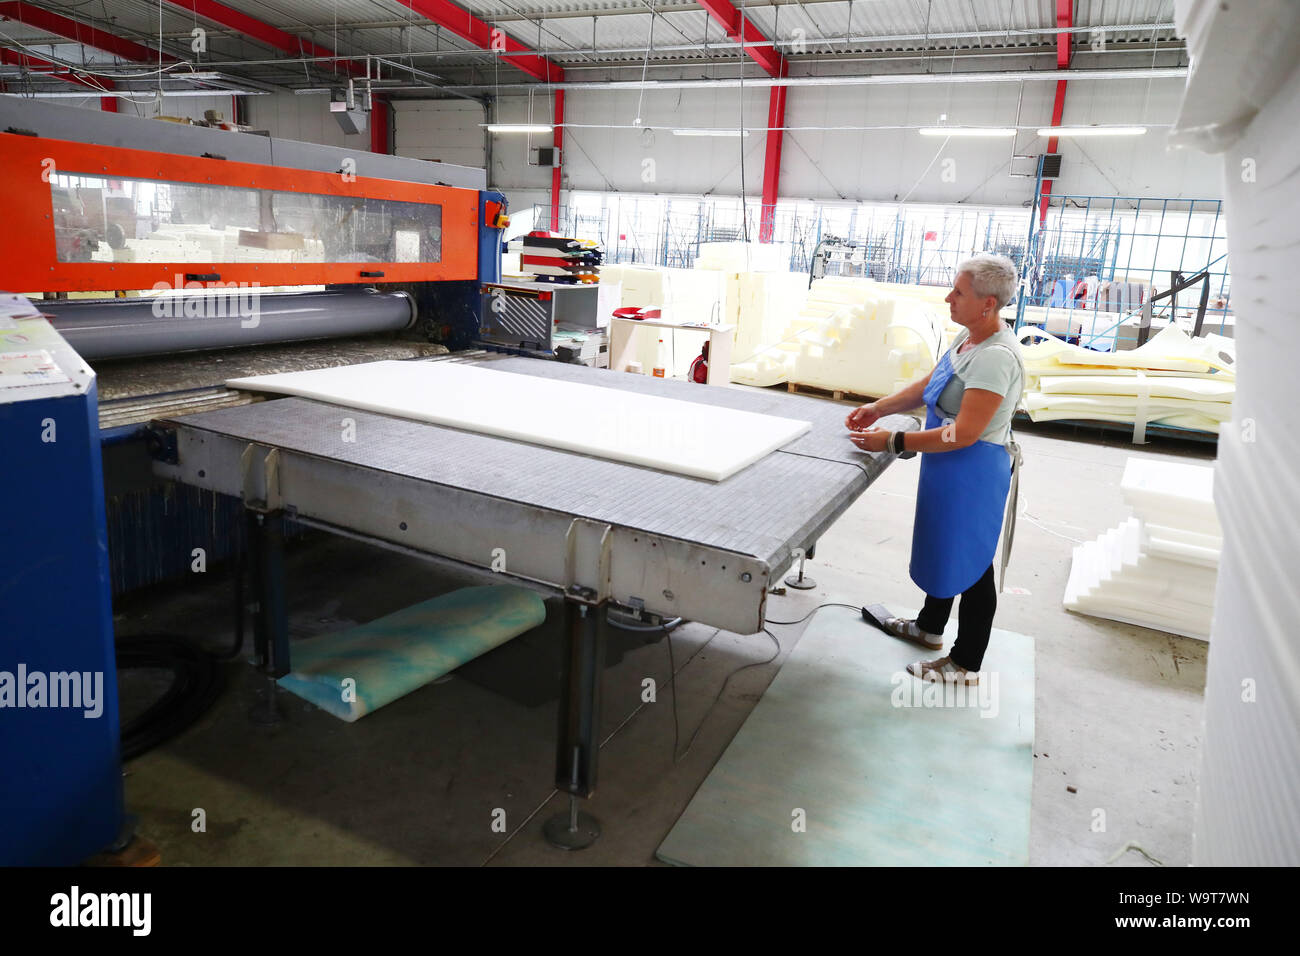 Weida Germany 15th Aug 2019 An Employee Stands At A Machine For The Production Of Foam